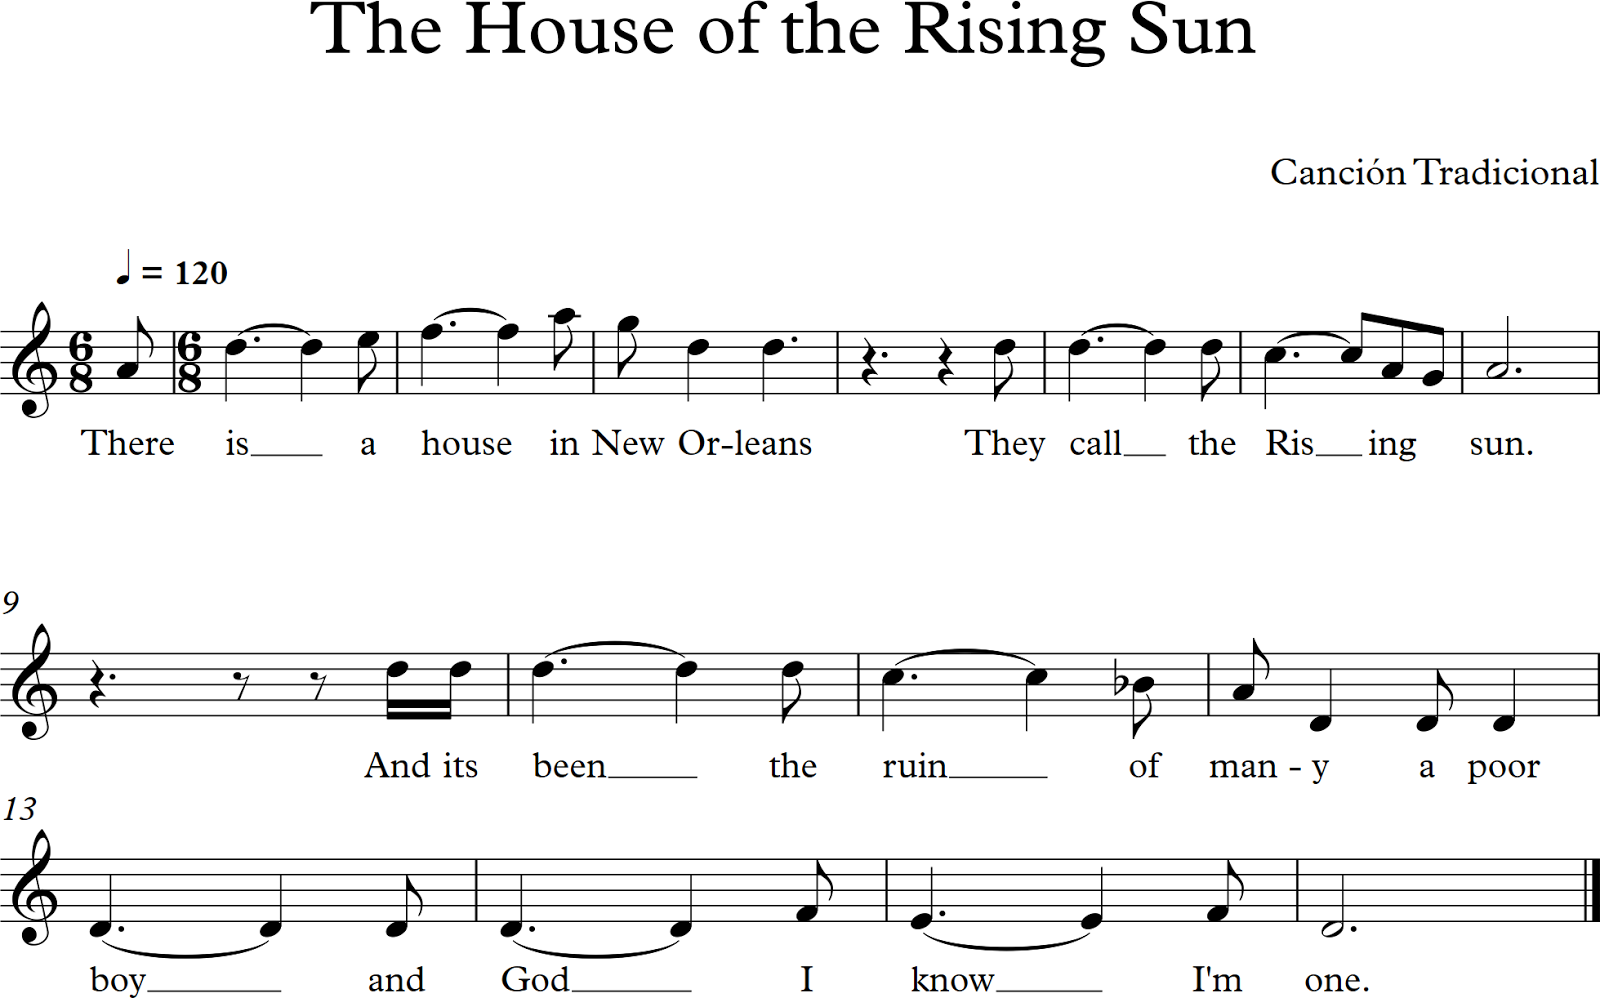 House of the rising sun 8 bit